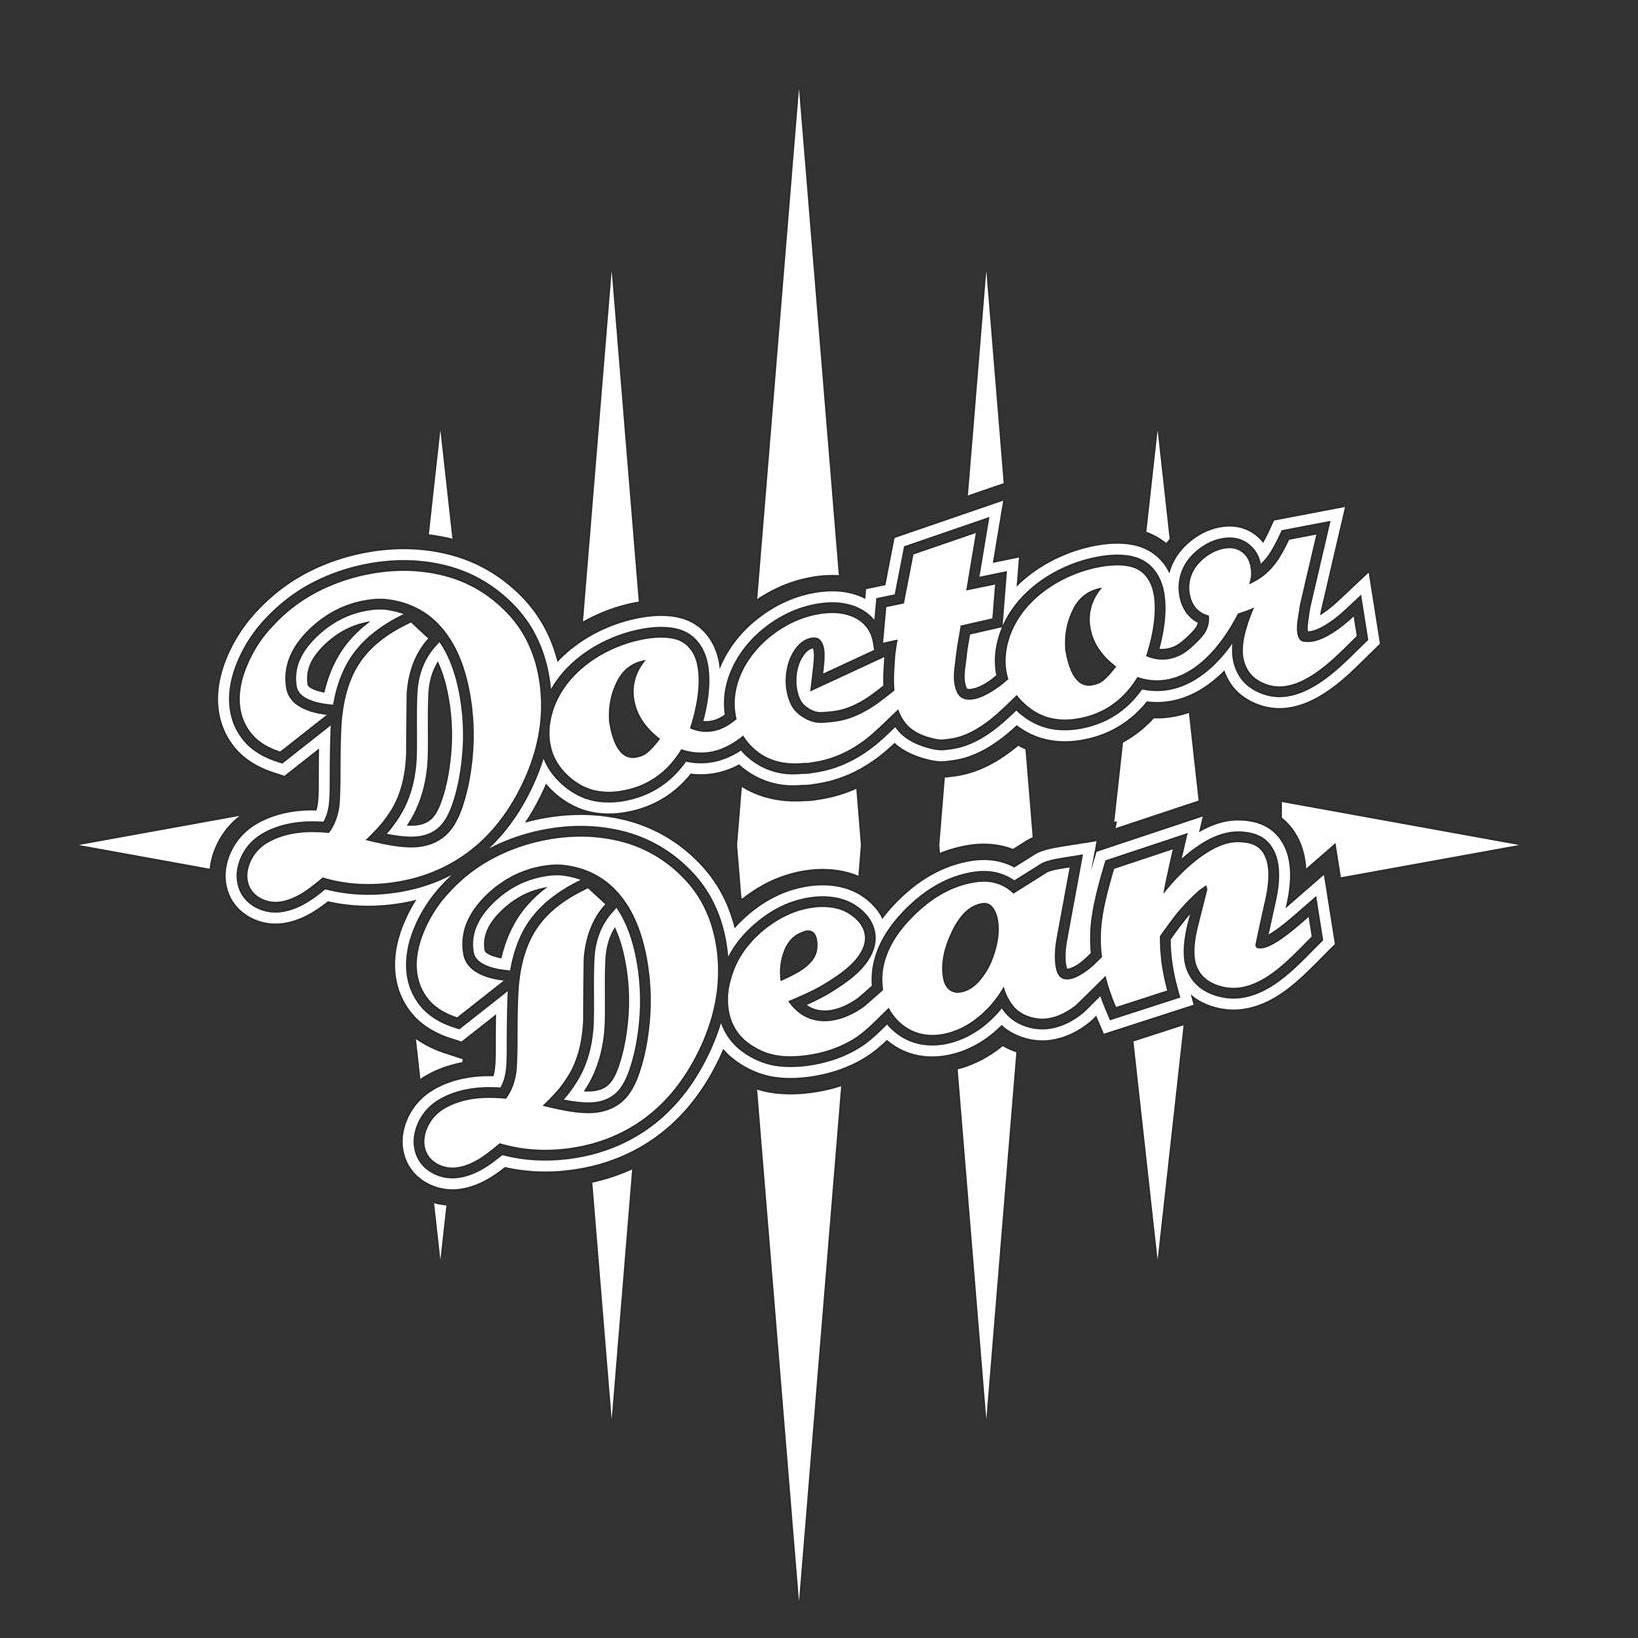 Doctor Dean Audio Logo